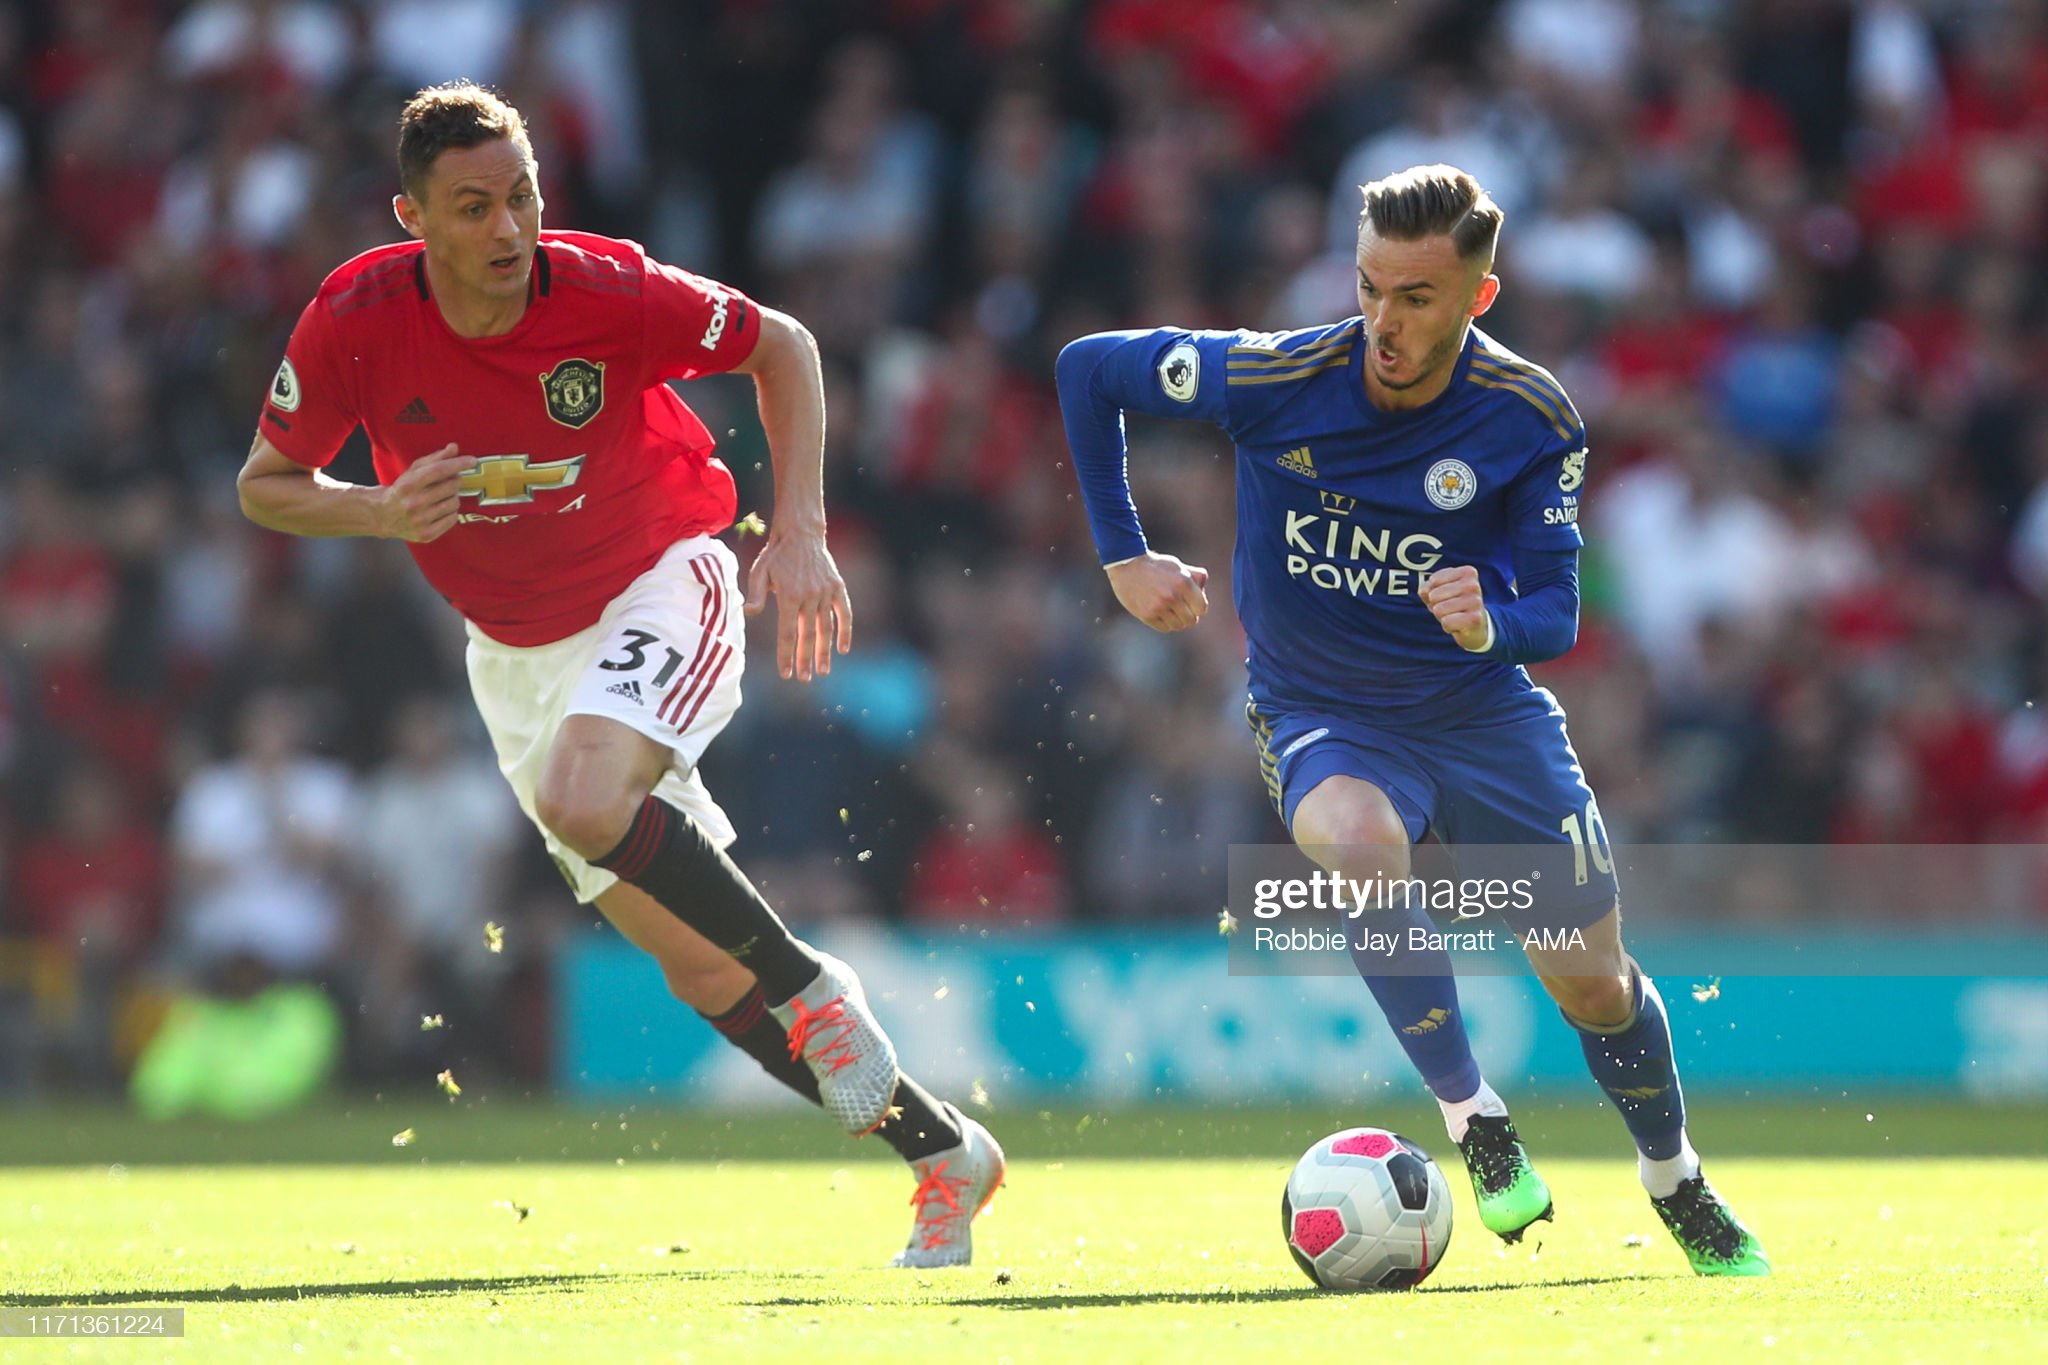 Leicester City vs Manchester United Preview, prediction and odds